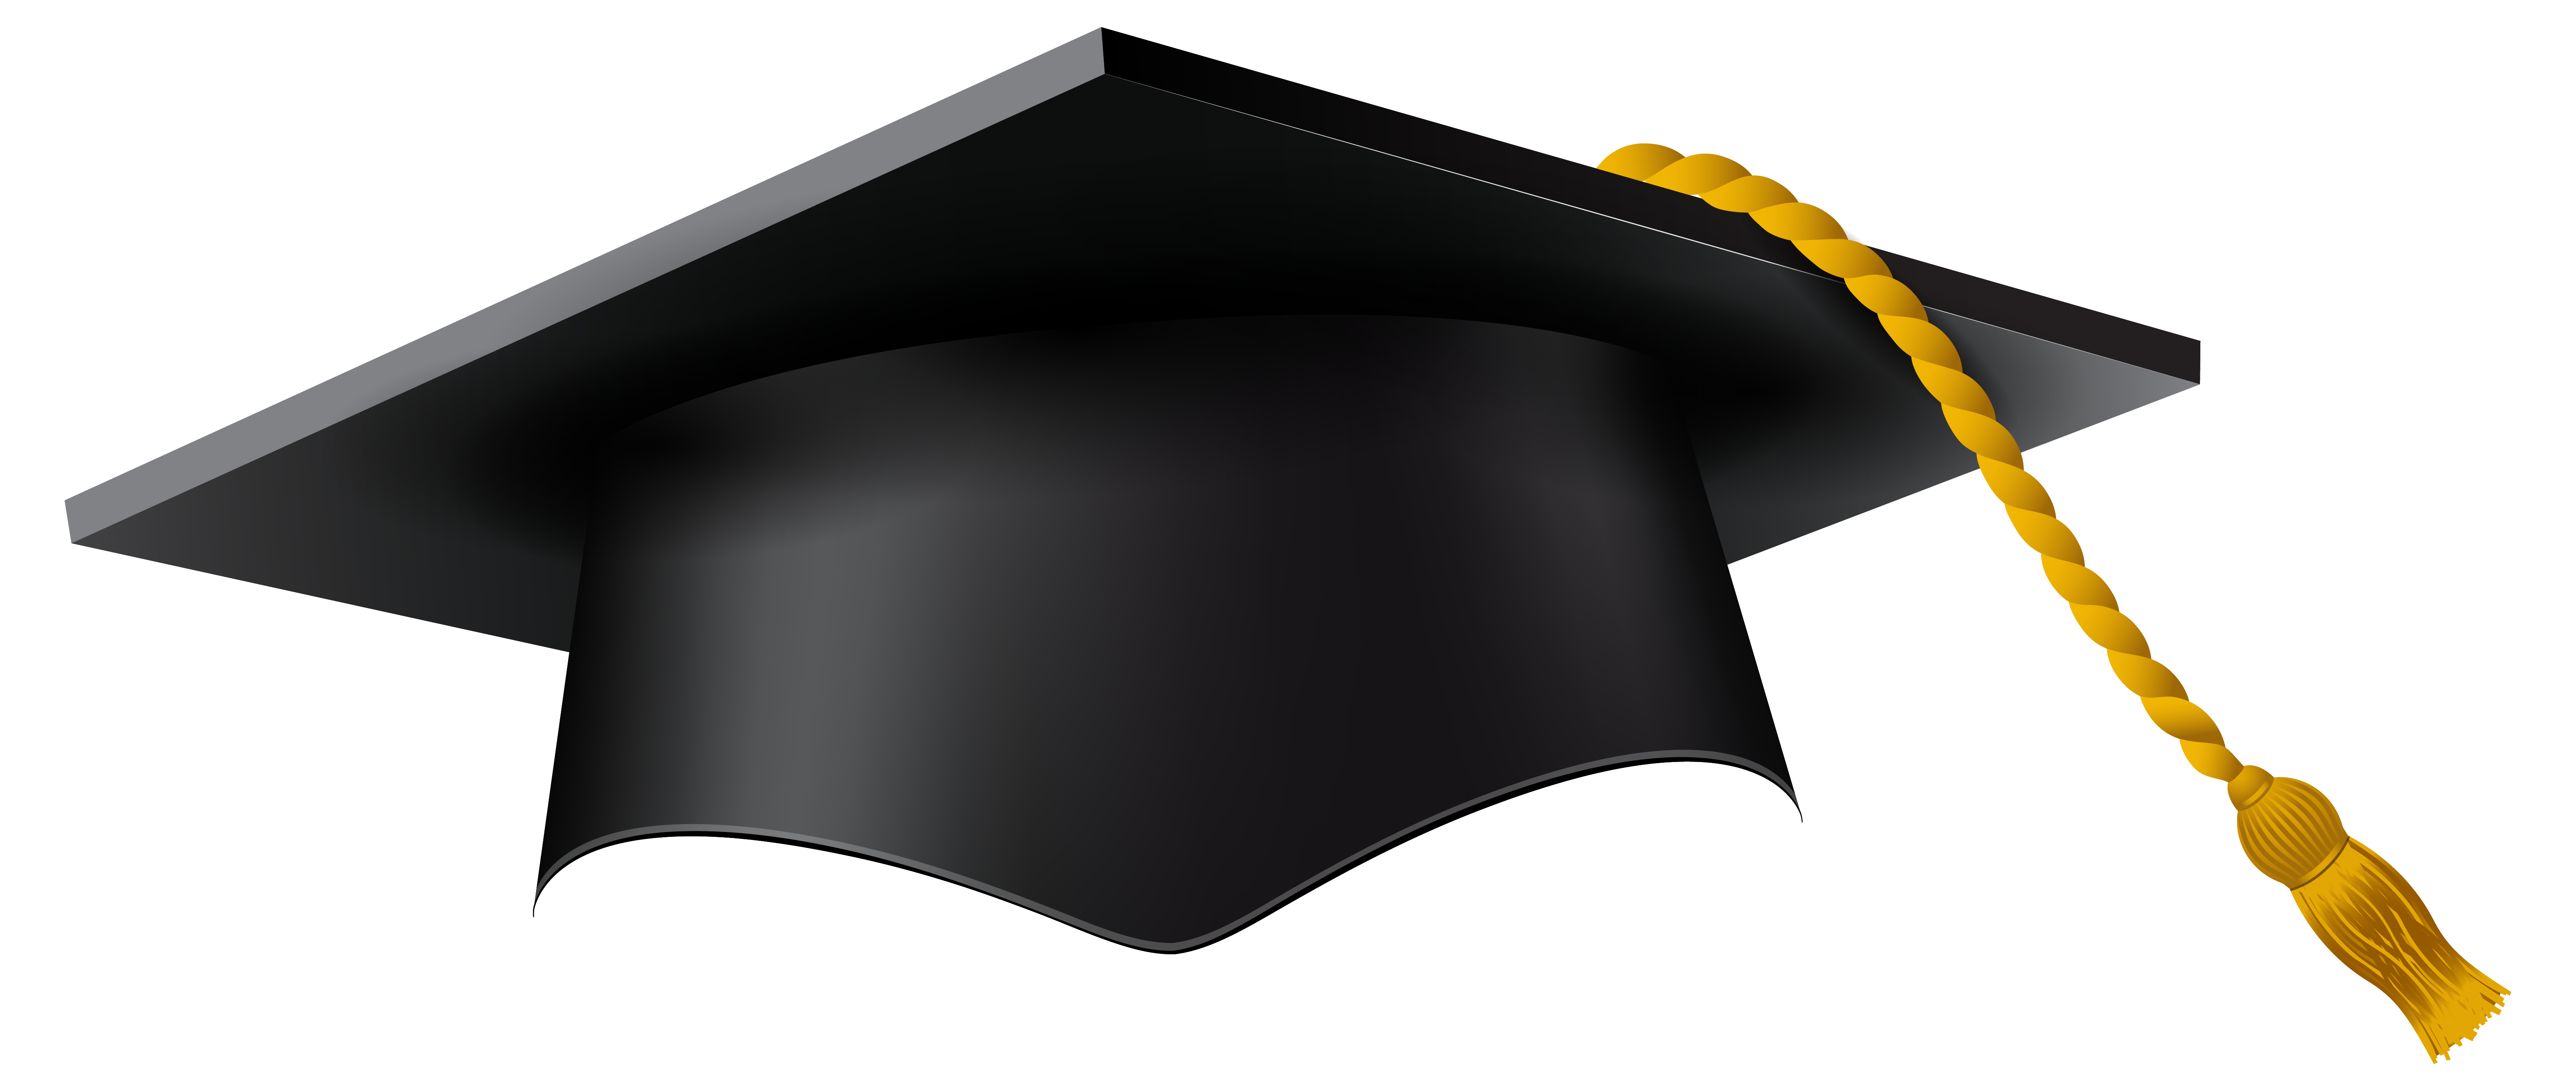 Graduation Cap Png Image Gallery Yopriceville High Quality Images And Transparent Png Free Clipart Graduation Cap Graduation Cap Clipart Free Clip Art